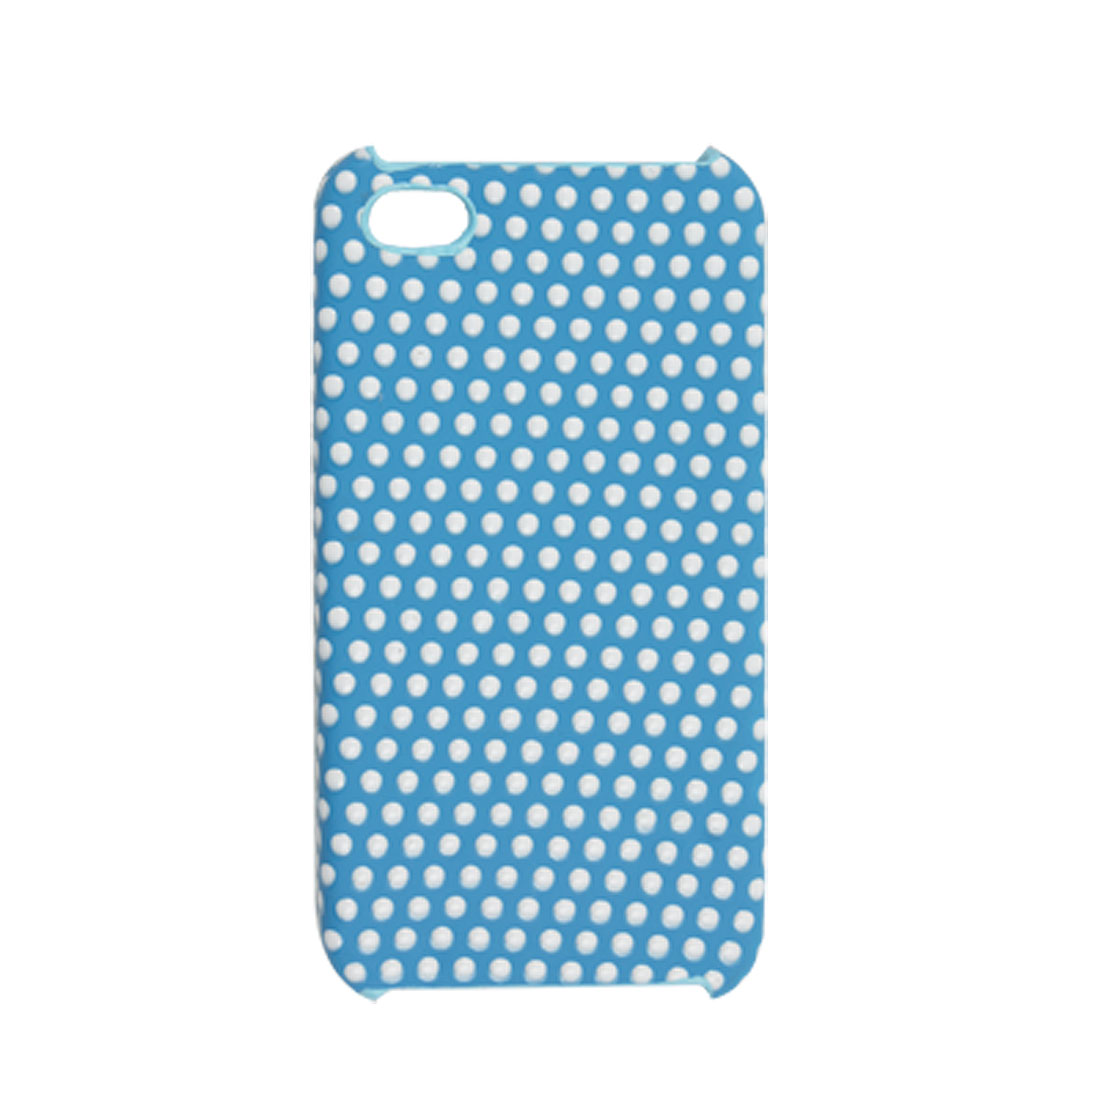 Nonslip White Dots Plastic Back Blue Case for iPhone 4 4G